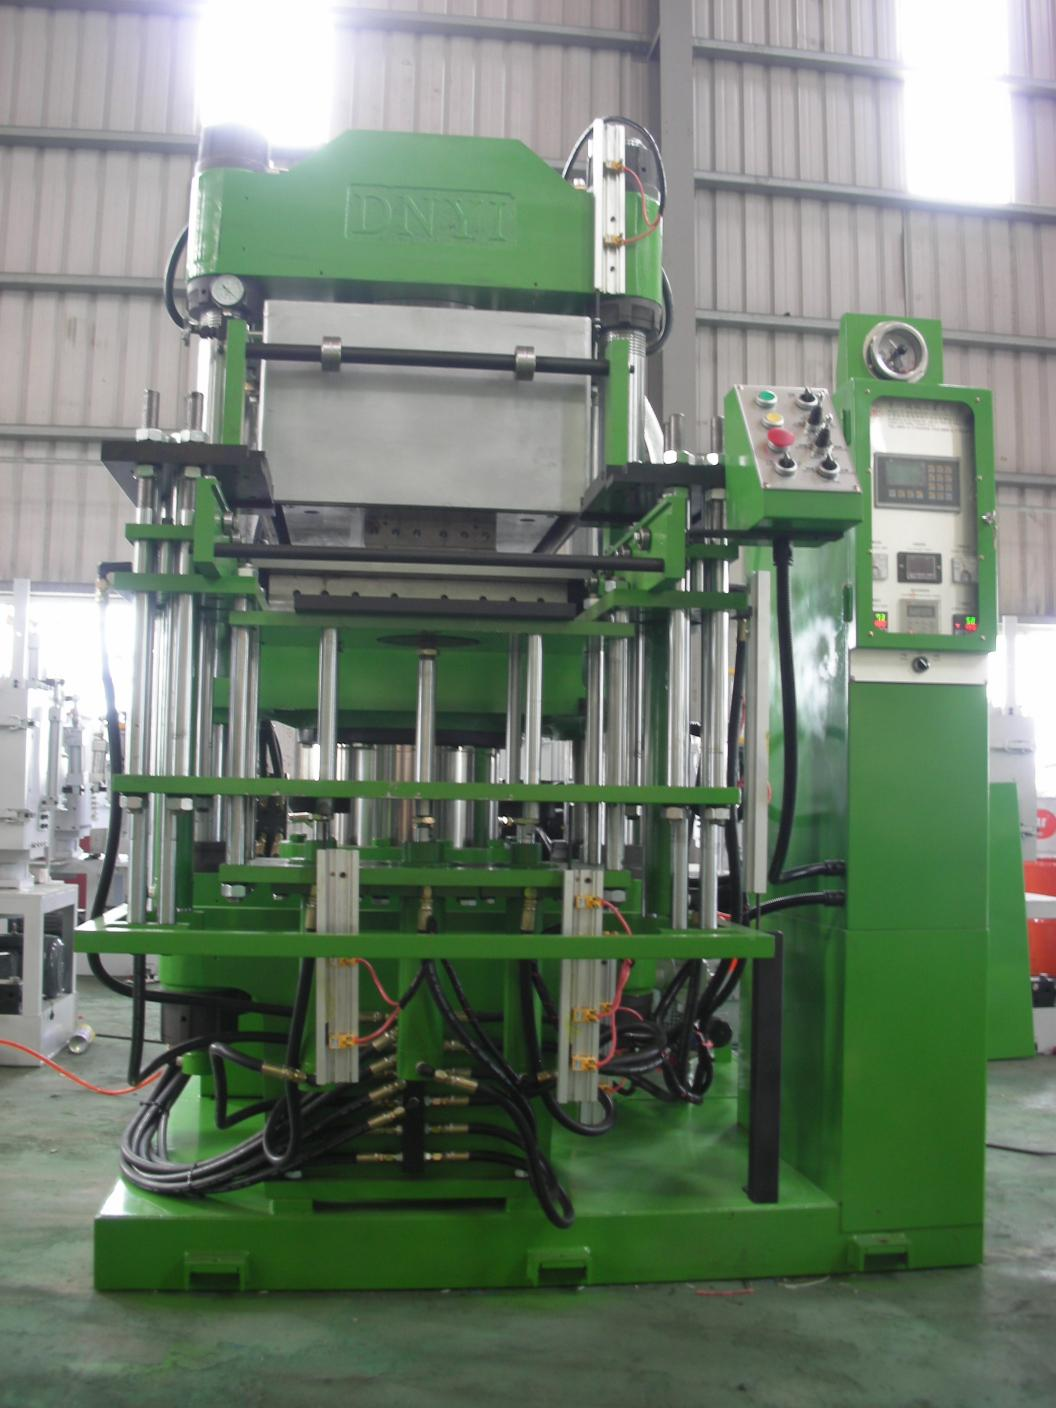 DYPV-S-*-4RT-Vacuum Type Rubber Compression Molding Machine-DYPV-S-*-4RT